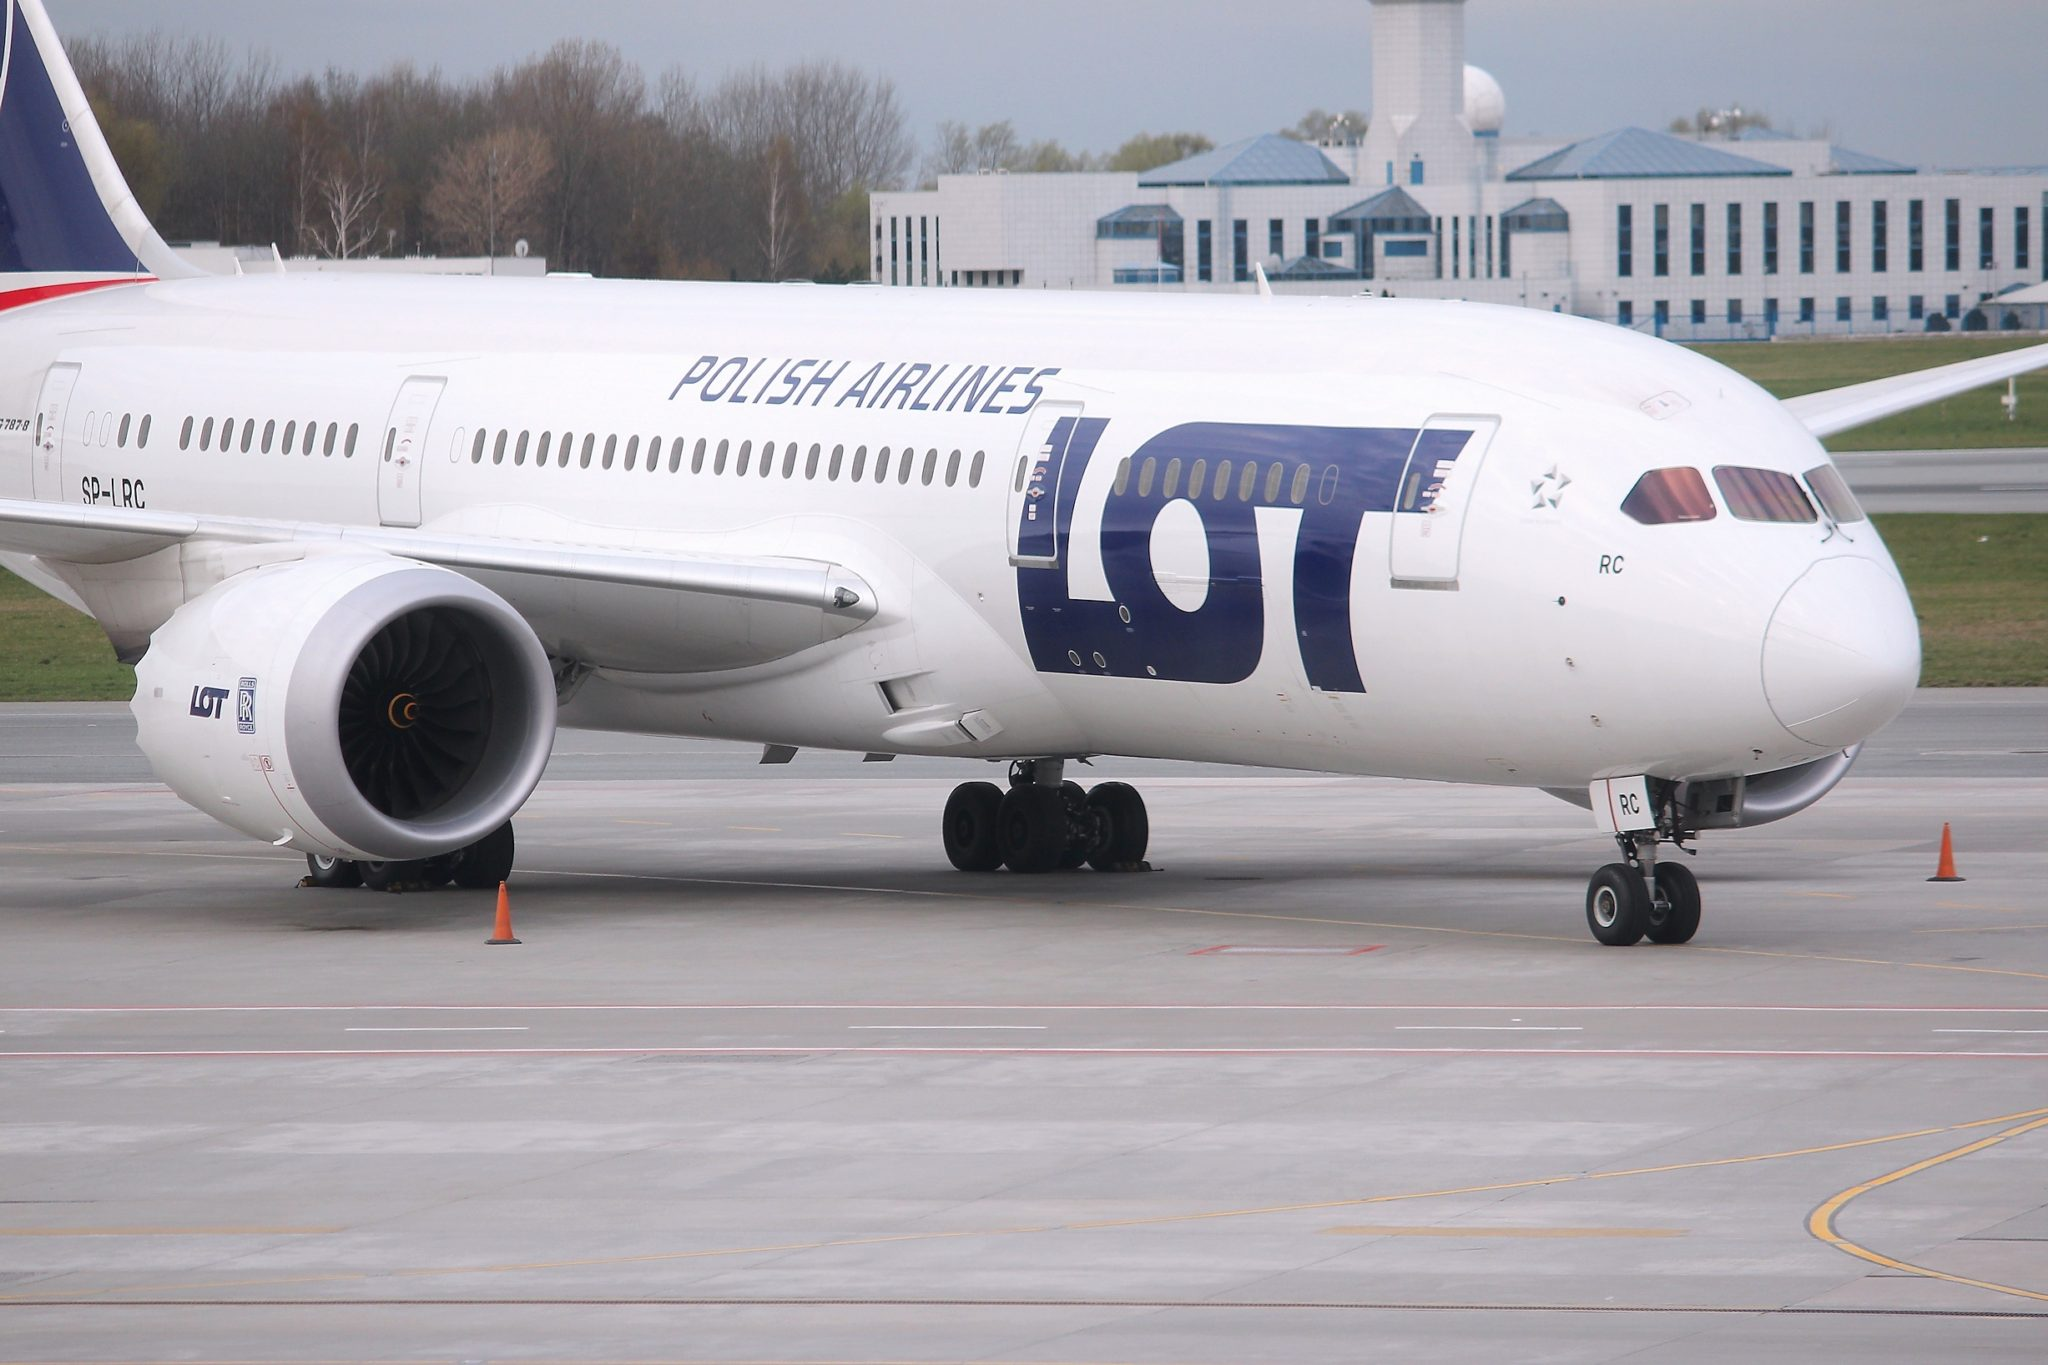 Boeing 787 Dreamliner LOT Polish Airlines at Warsaw Airport, Poland. LOT